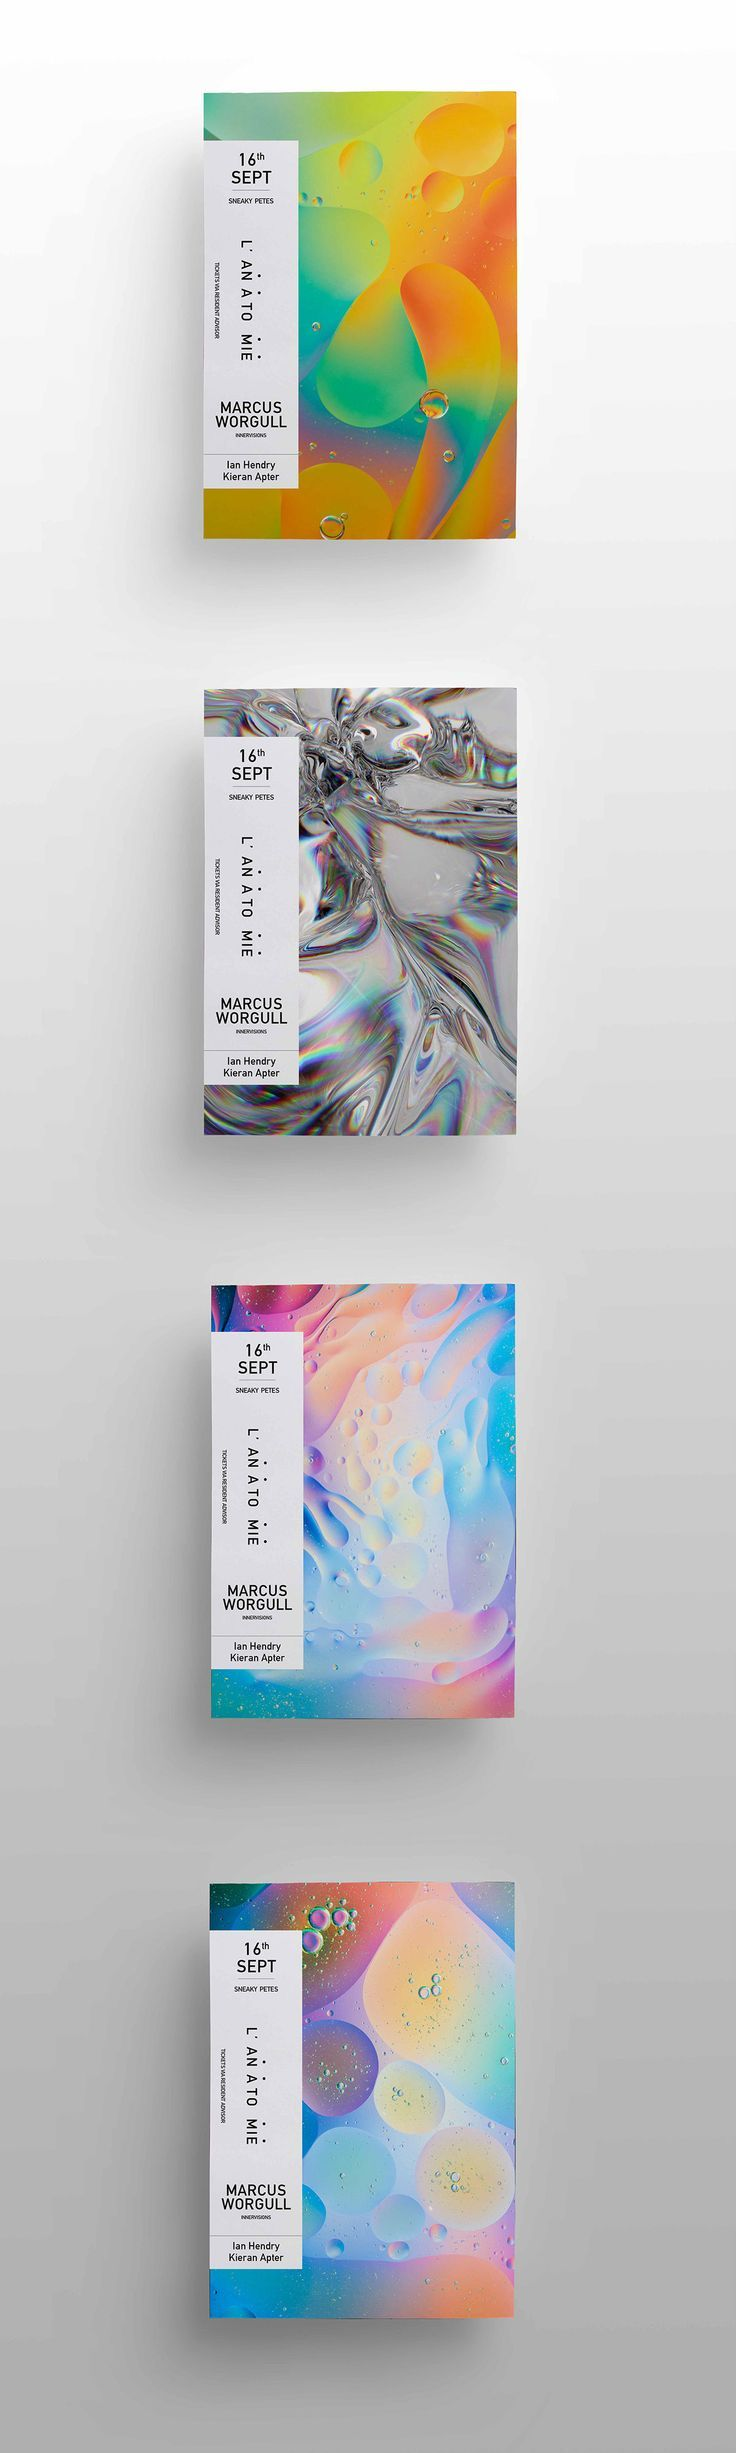 Poster design graphic design - Find This Pin And More On Editorial Design By Olgapontes